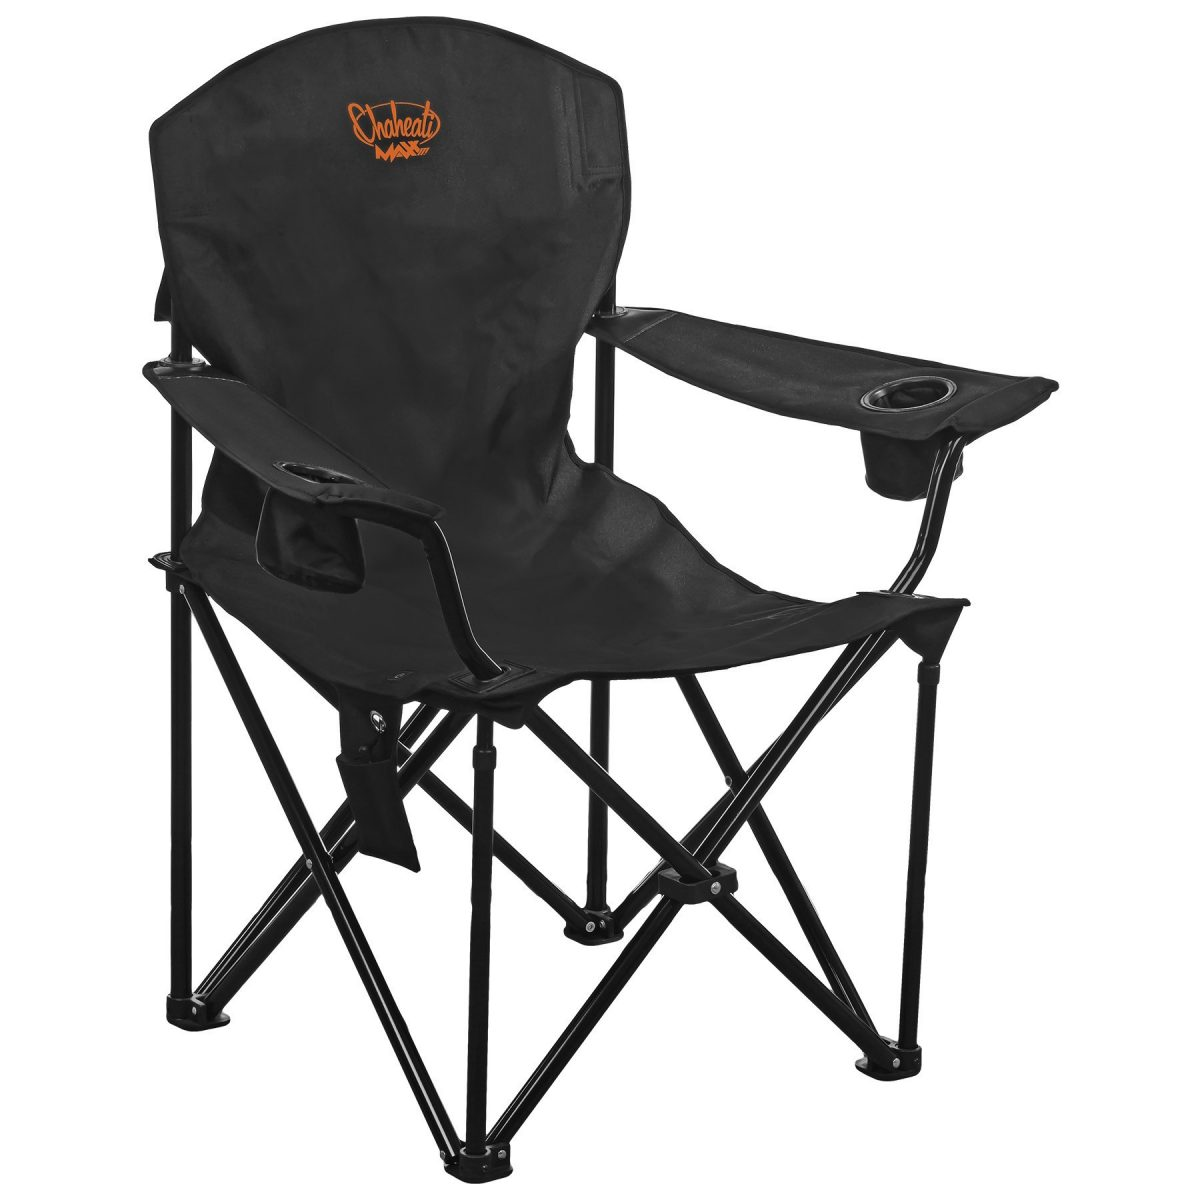 Chaheati Black MAXX Heated Chair